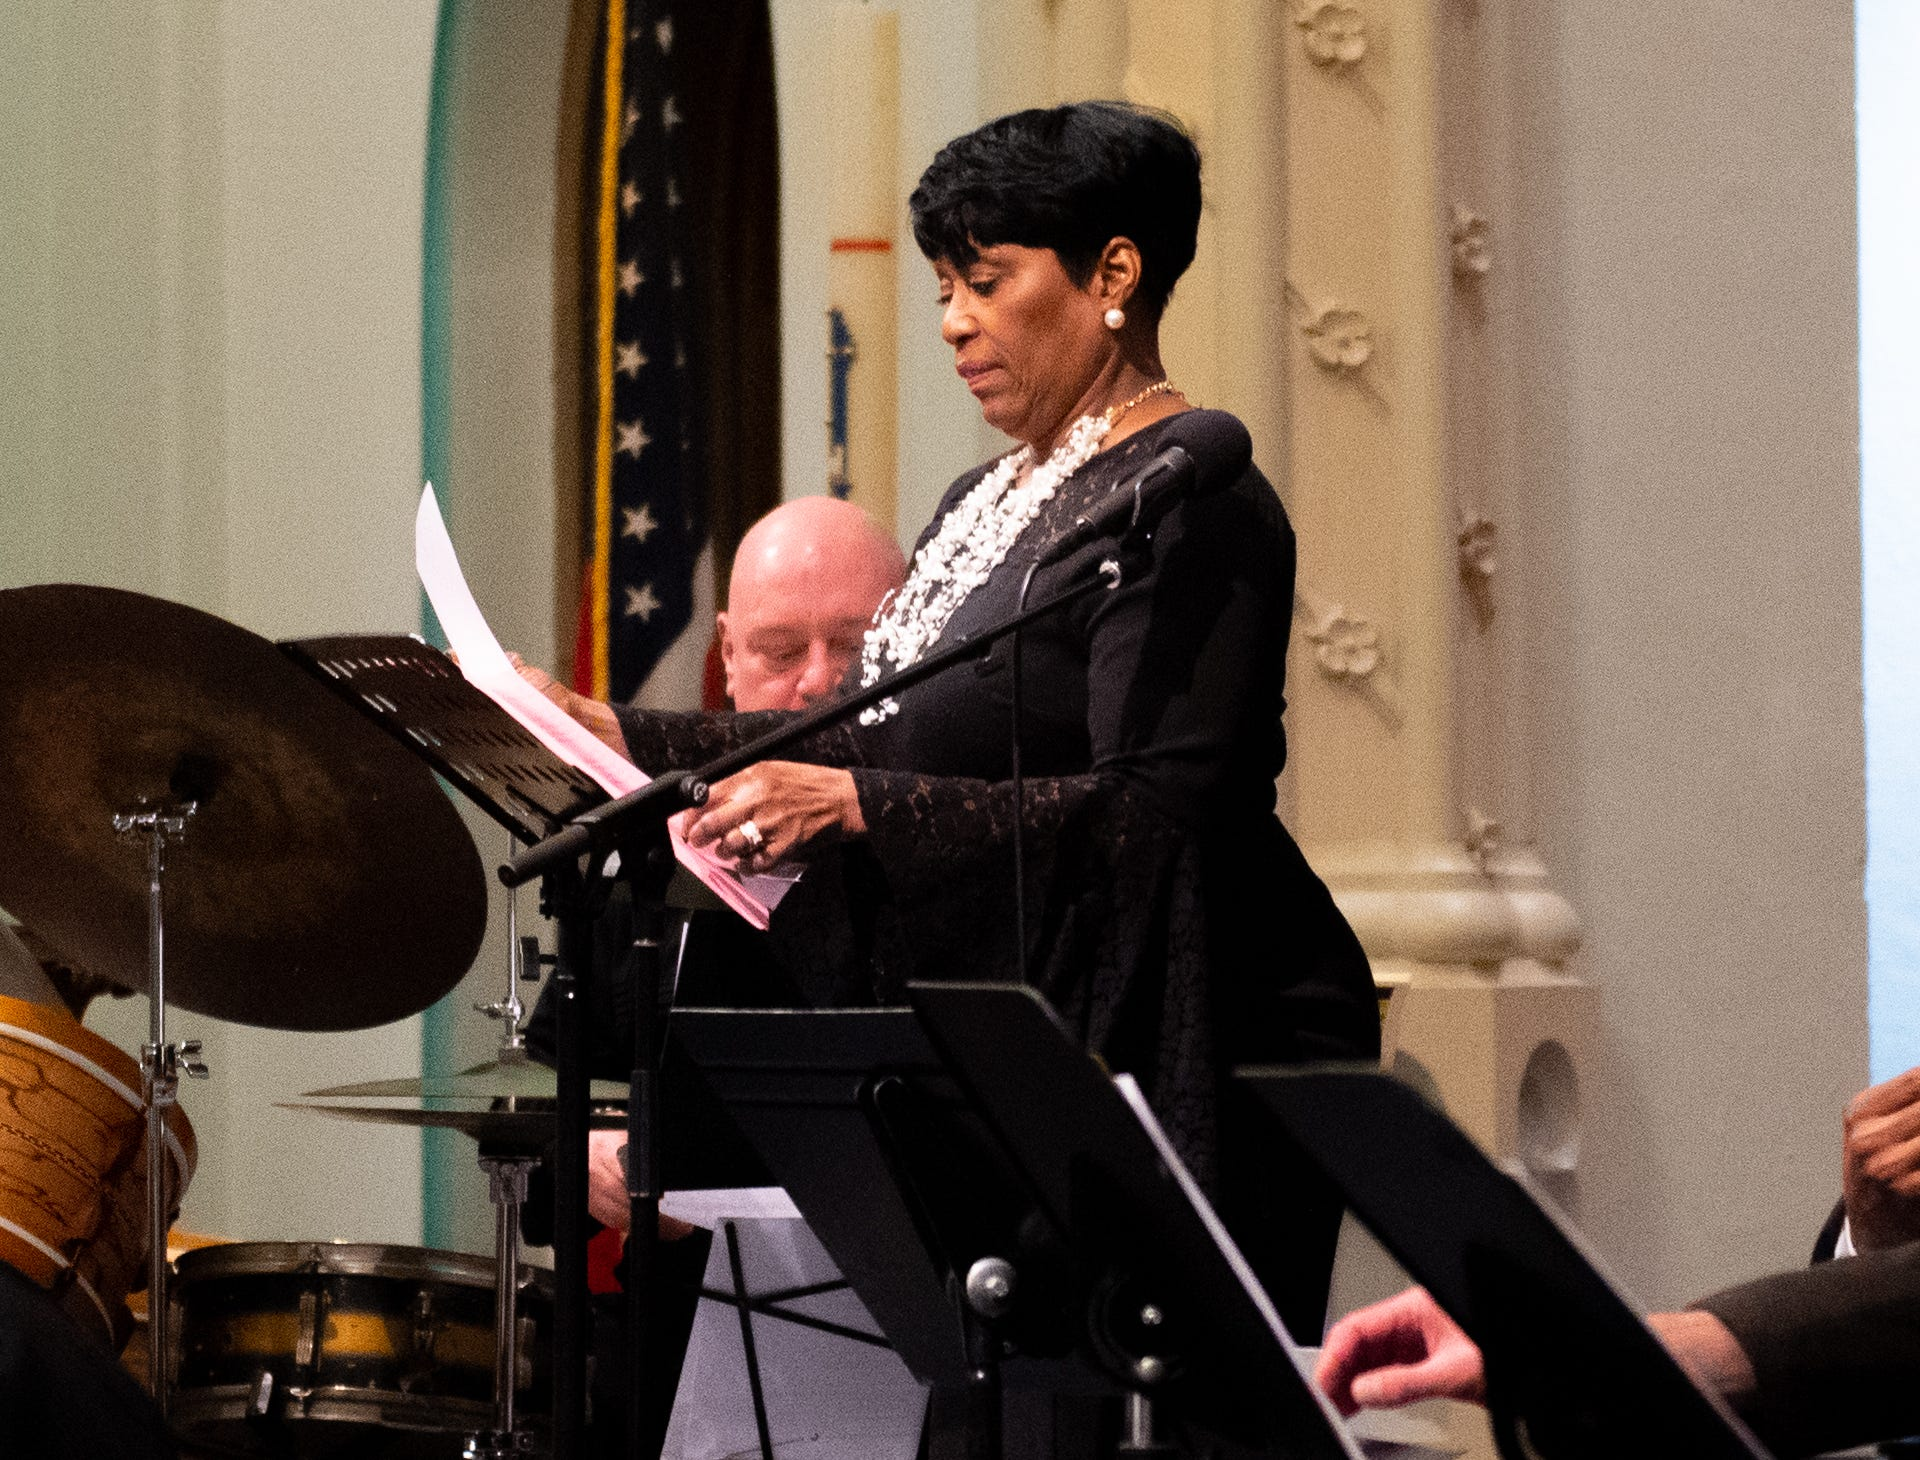 Vocalist Diane Wilson-Bedford provided a strong captivating voice, which harmonized with the instruments perfectly during the 21st annual Jazz Vespers concert at First Presbyterian Church in York, January 12, 2019.